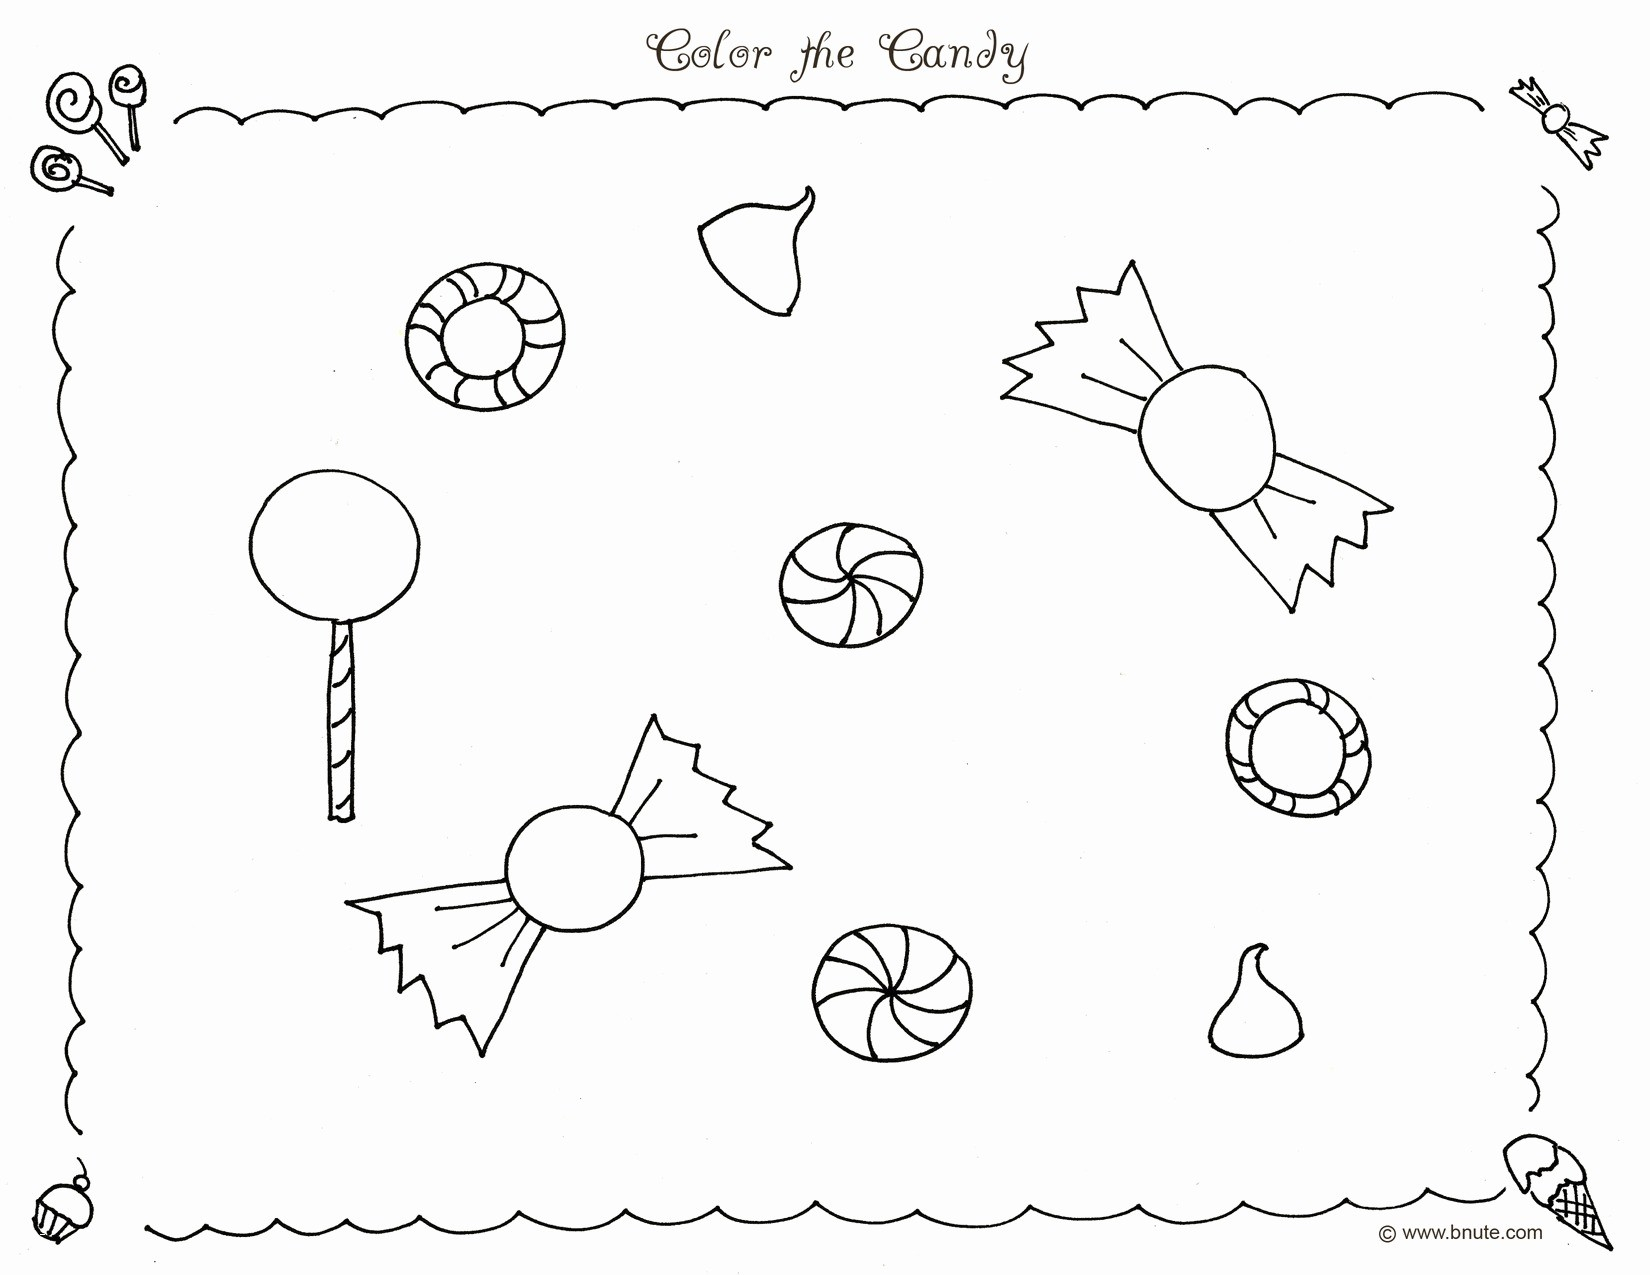 Chocolate Candy Coloring Pages  Printable 18j - Free Download